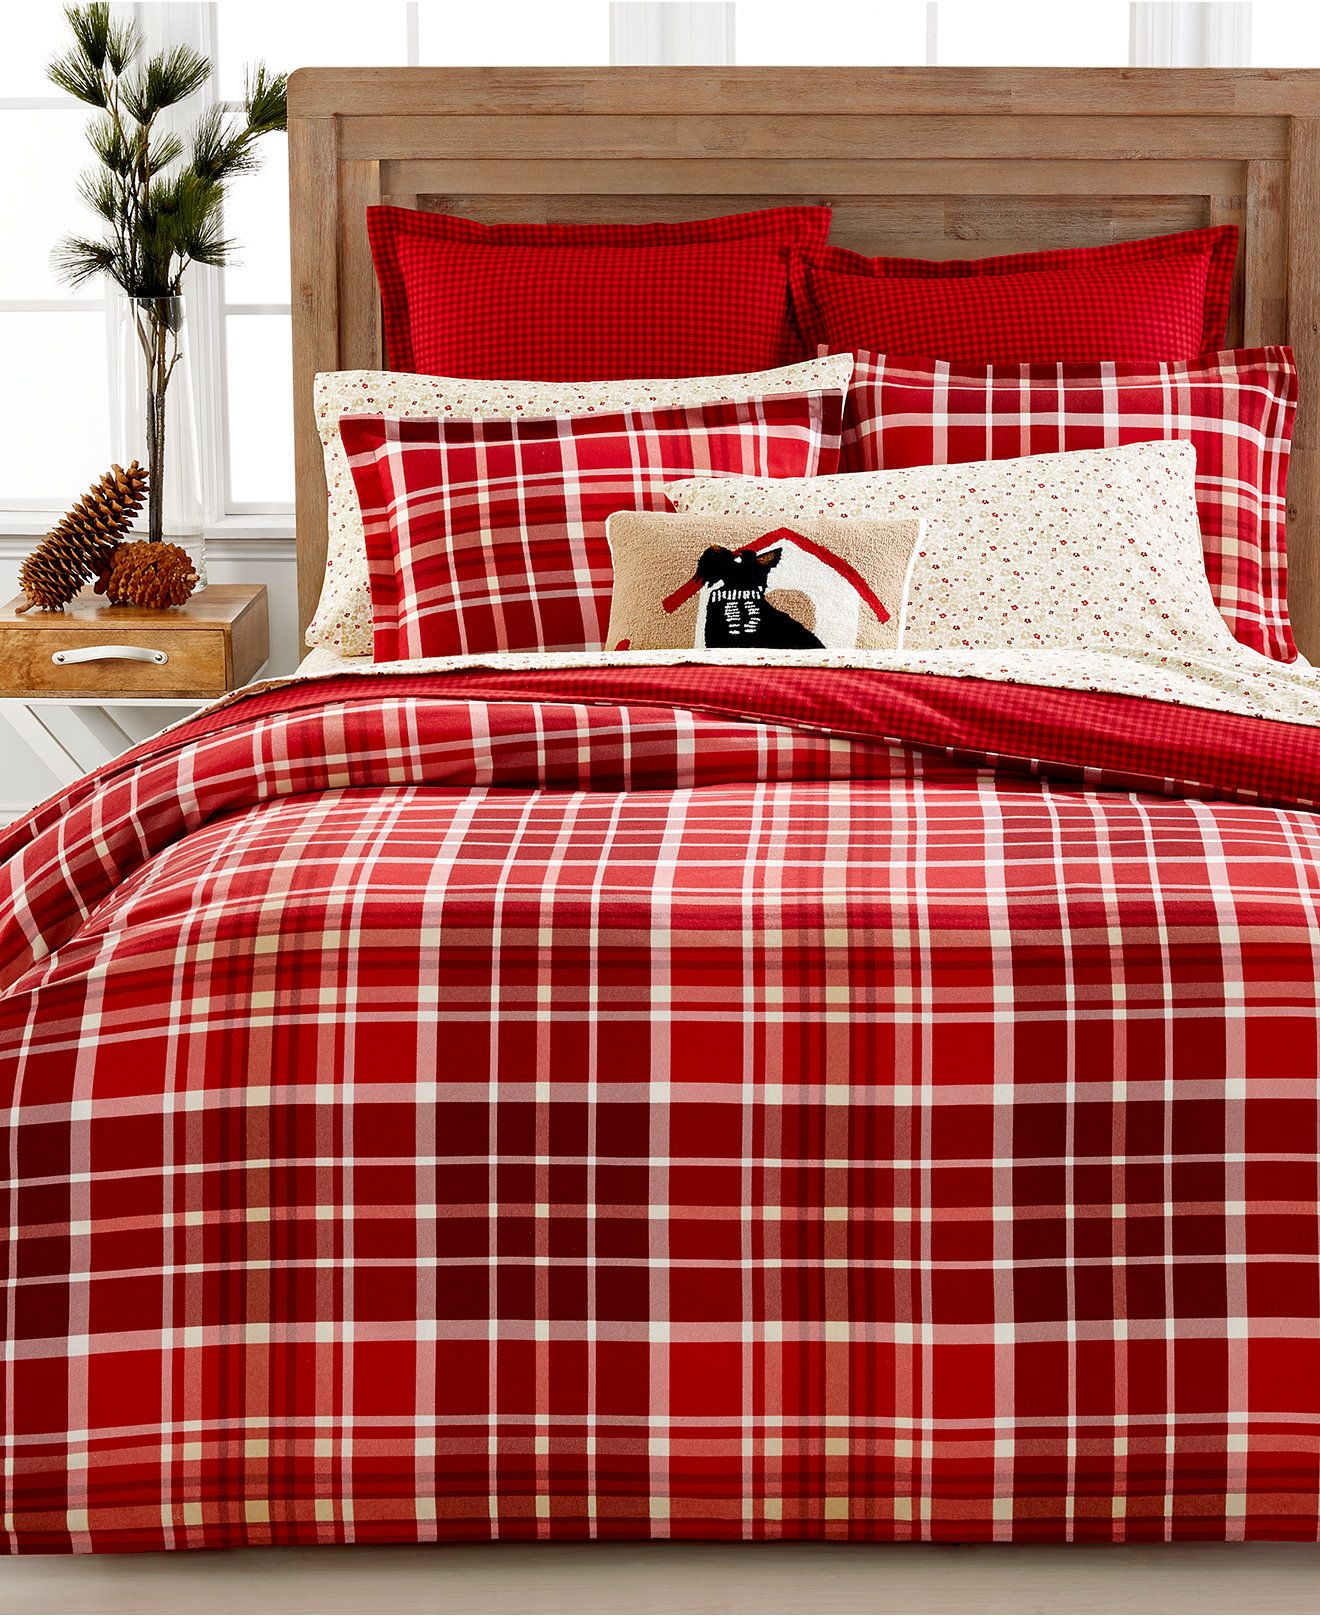 covers wooden for plus classy king and headboard floor ideas bedding plaid sets sidetable also comforter rugs with bedroom creative pillows furniture duvet